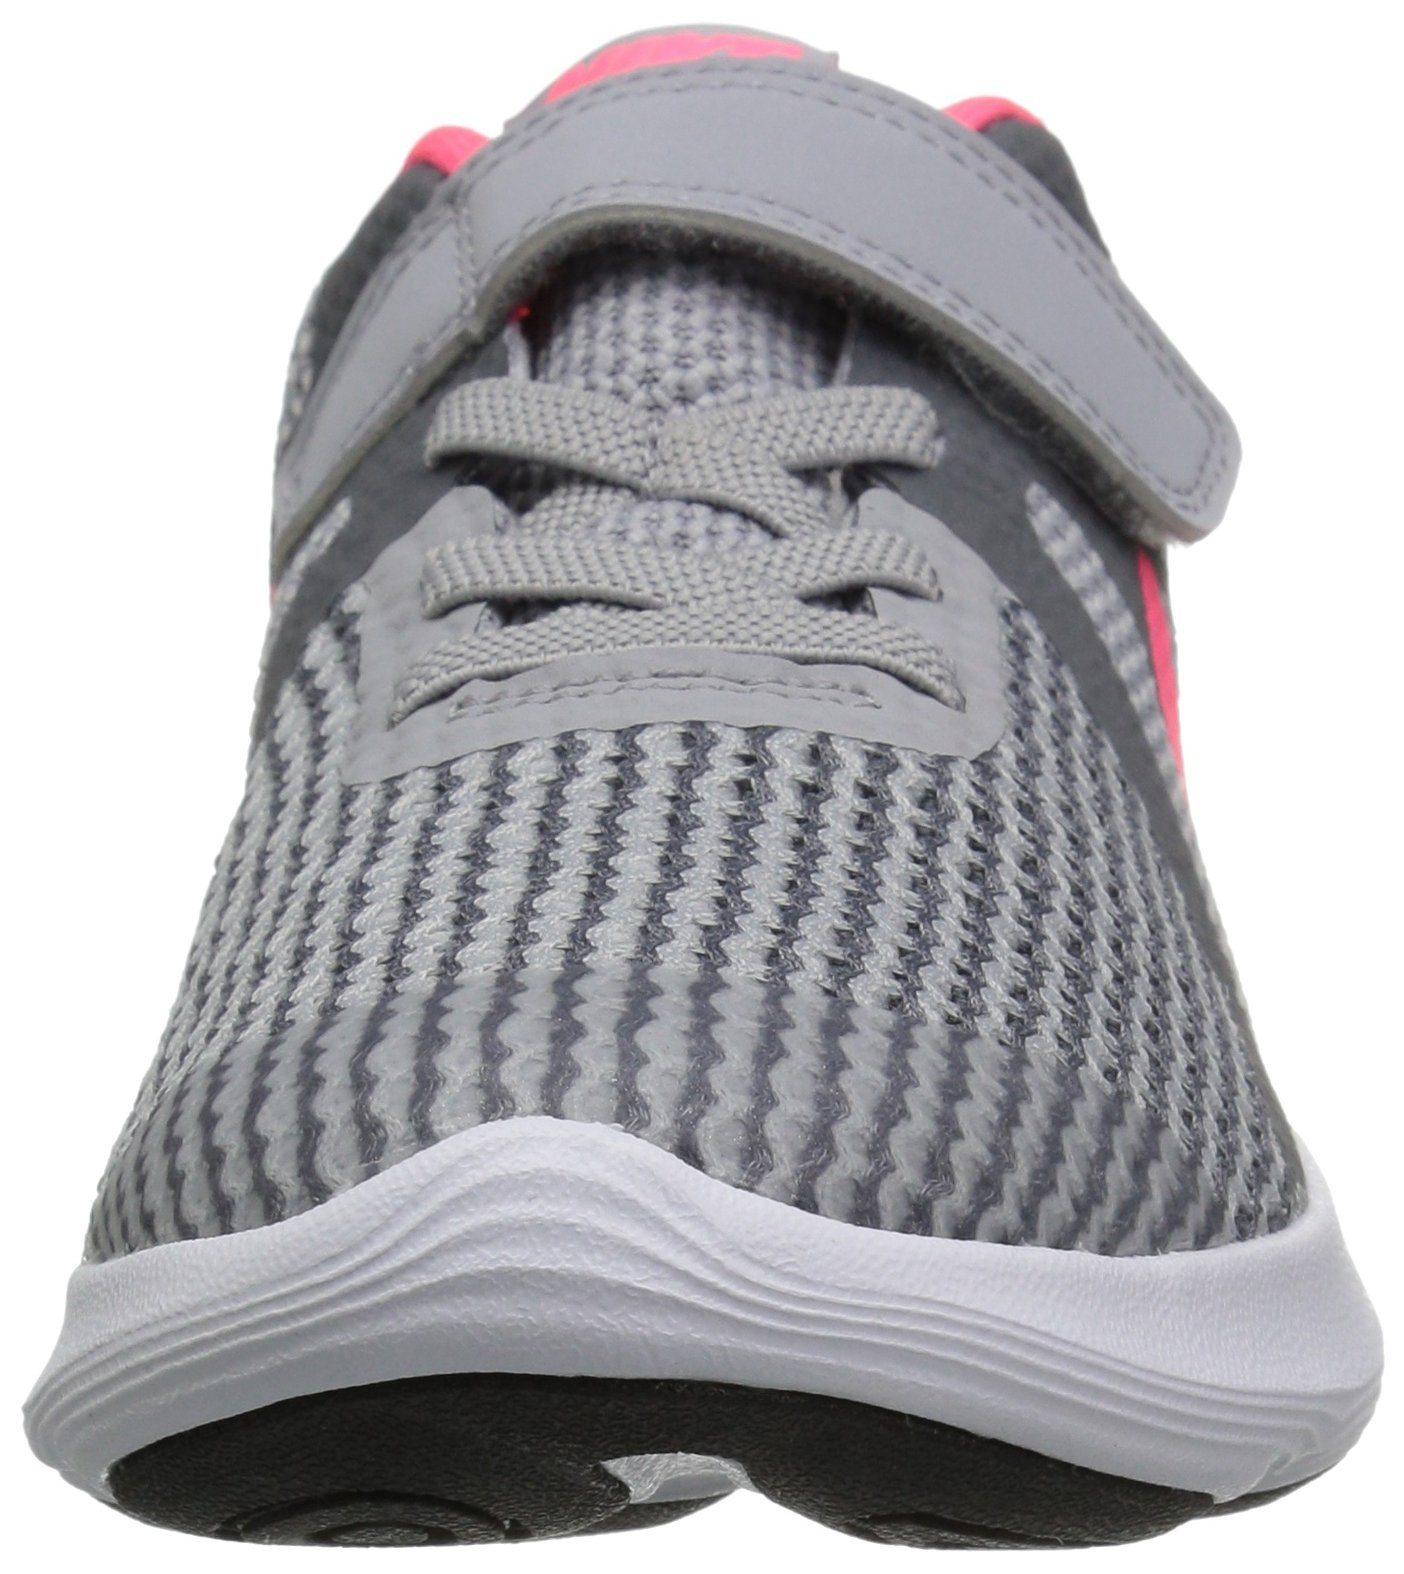 Nike Girls' Revolution 4 (PSV) Running Shoe, Wolf Racer Pink-Cool Grey-White, 3Y Child US Little Kid by Nike (Image #4)